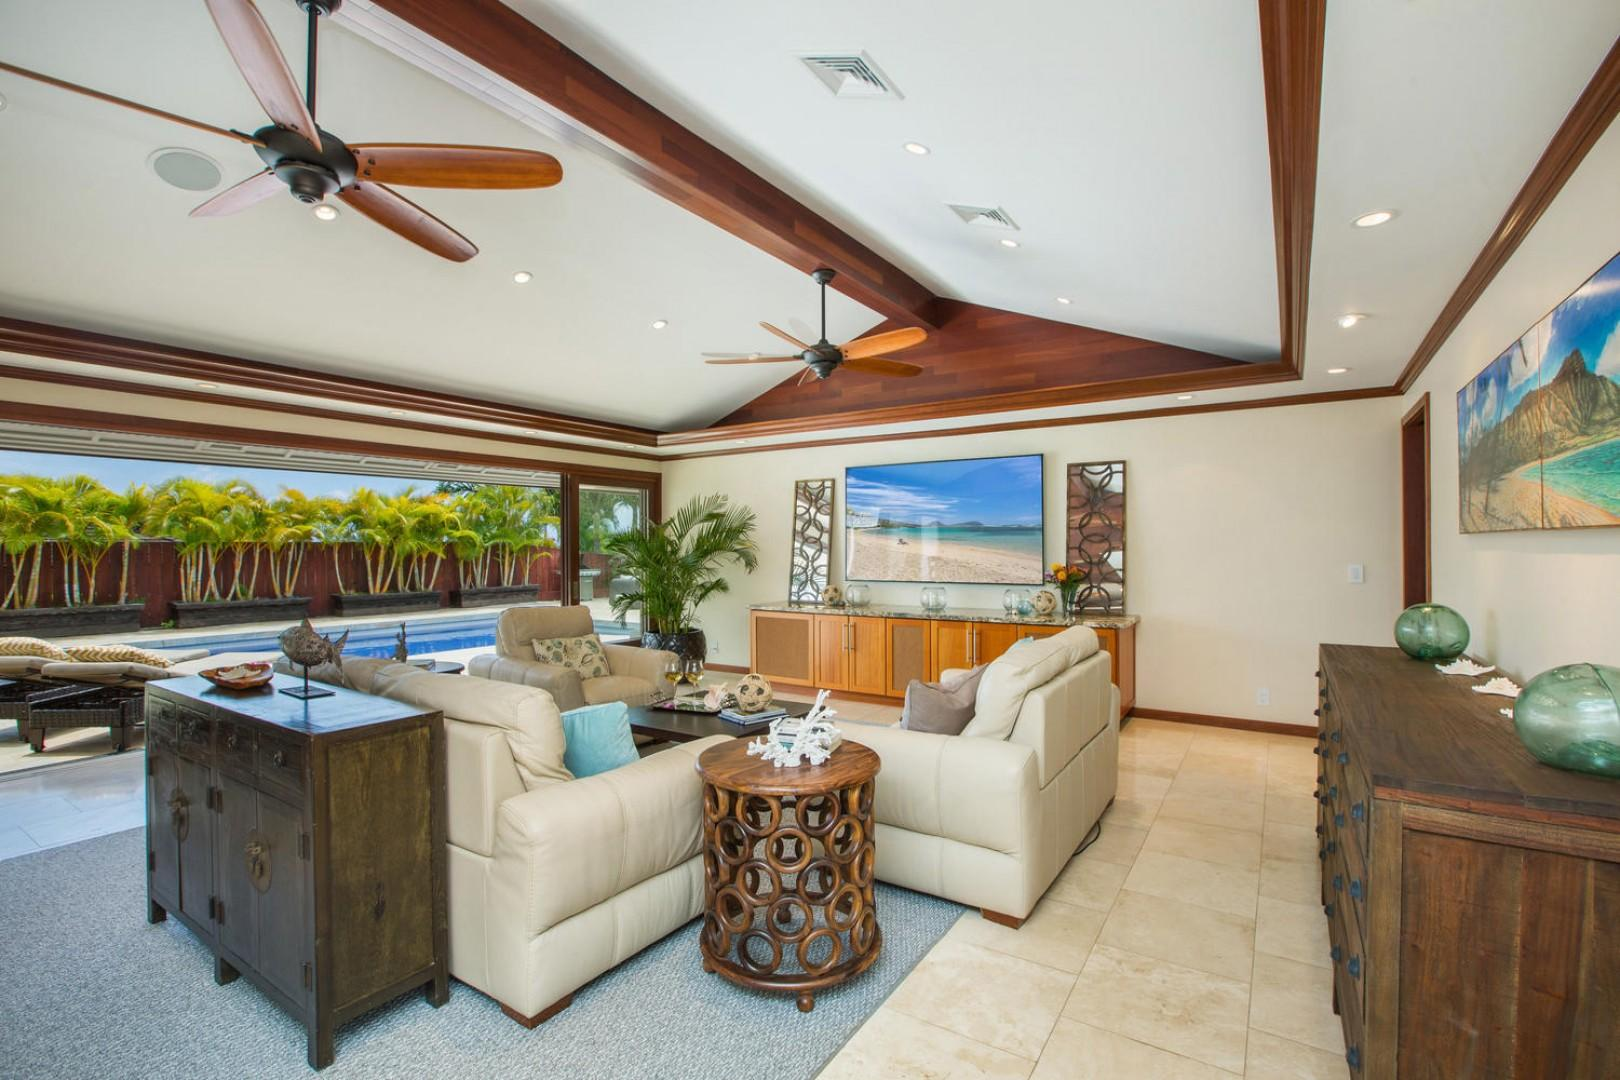 Enjoy the superior living room sound system with an 85-inch ultra-high-definition television, air conditioning, comfortable leather couches, and pool views.